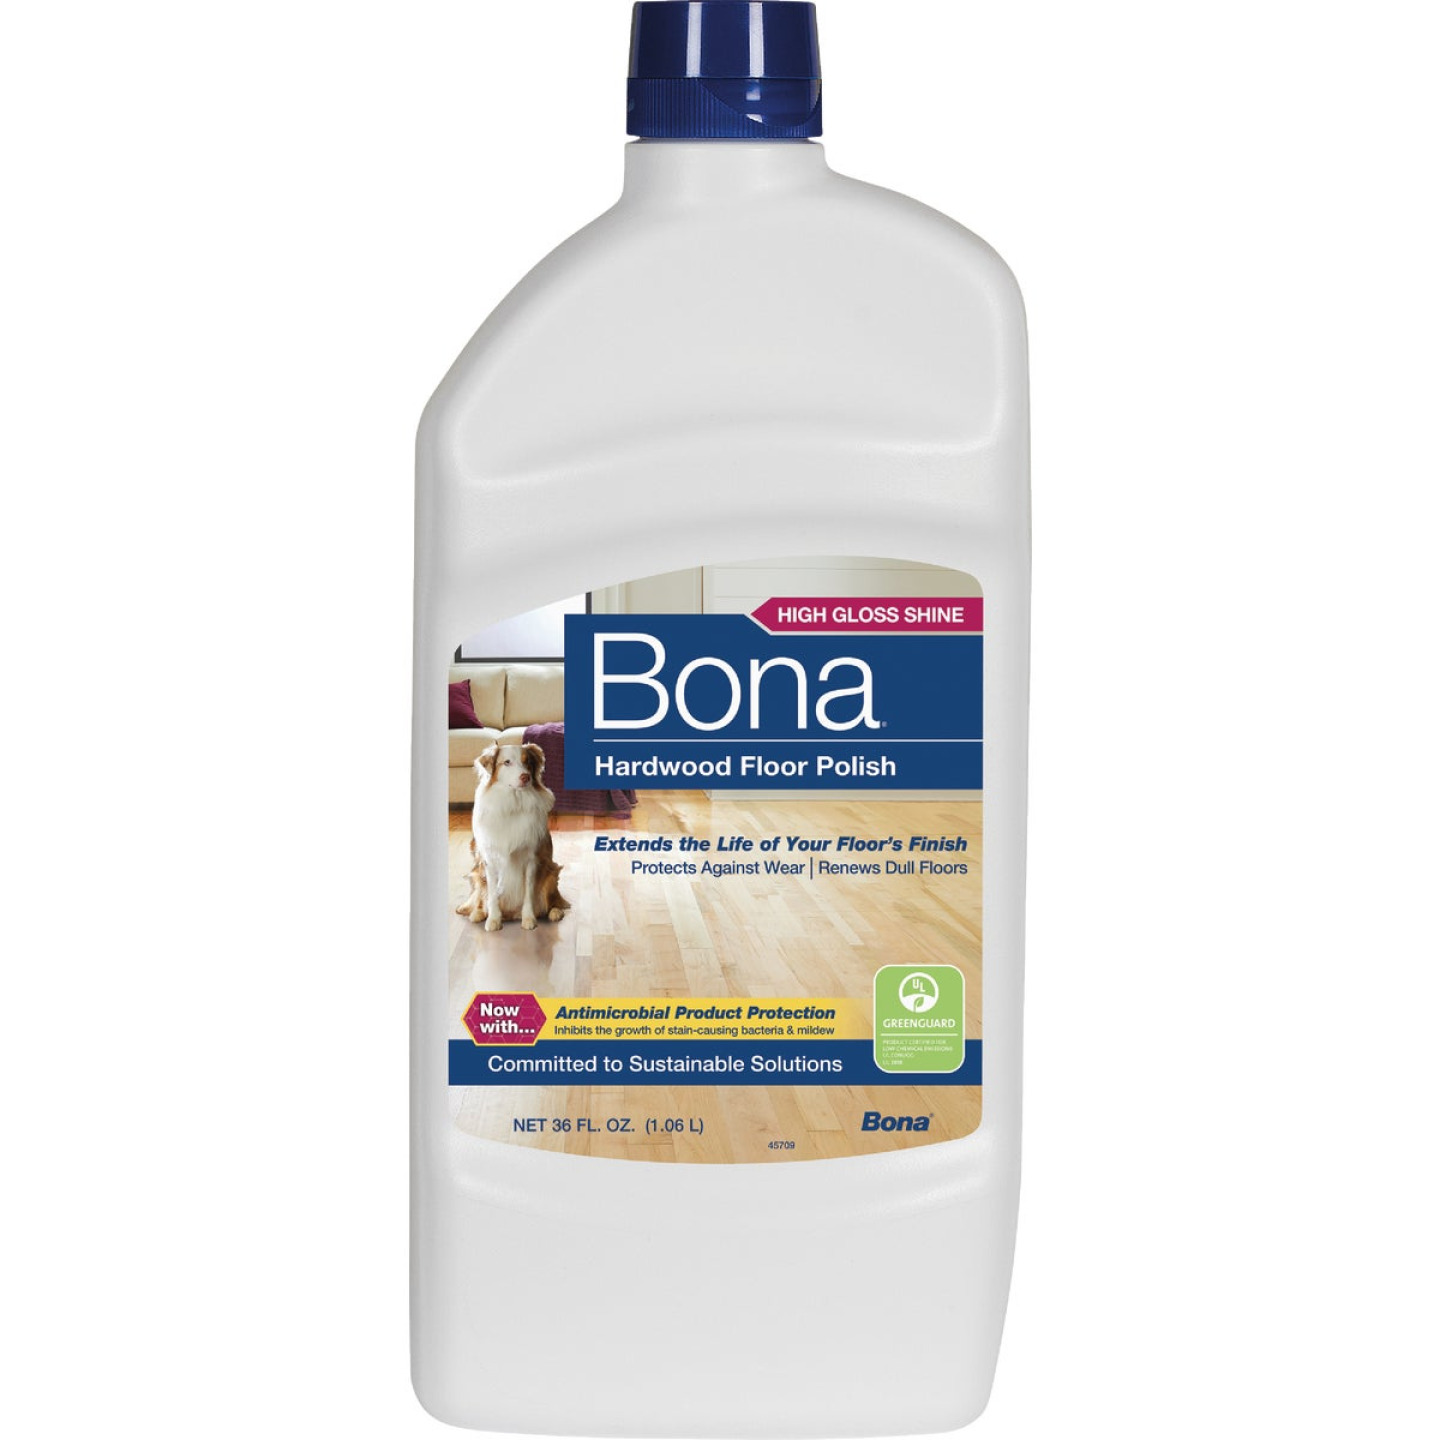 Bona 36 Oz. High Gloss Hardwood Floor Polish Image 1